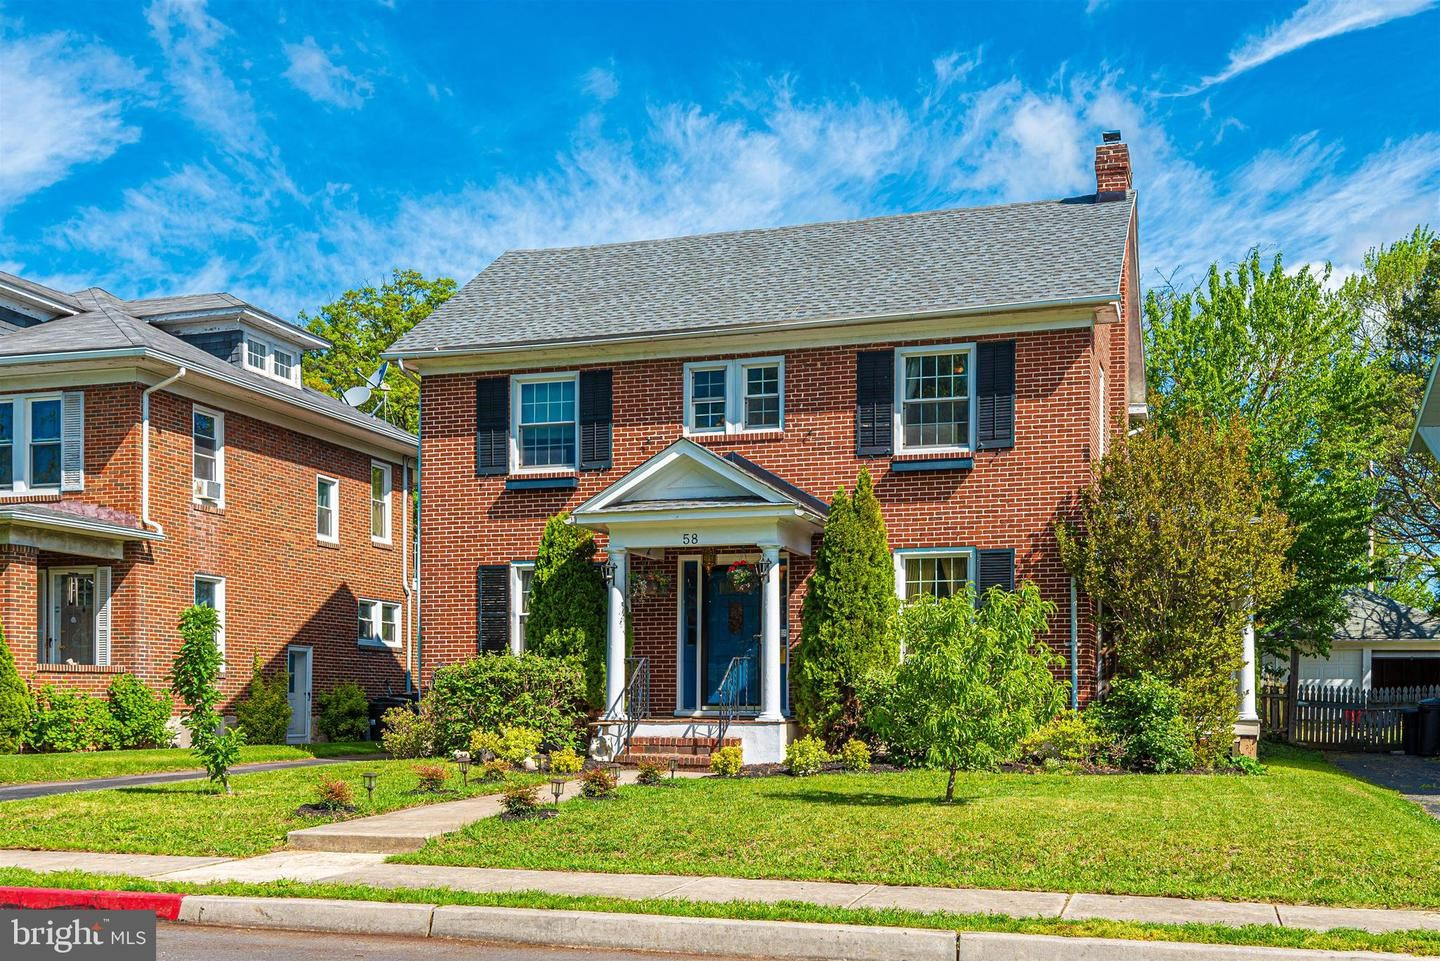 Photo of 58 E IRVIN AVE, HAGERSTOWN, MD 21742 (MLS # MDWA179528)